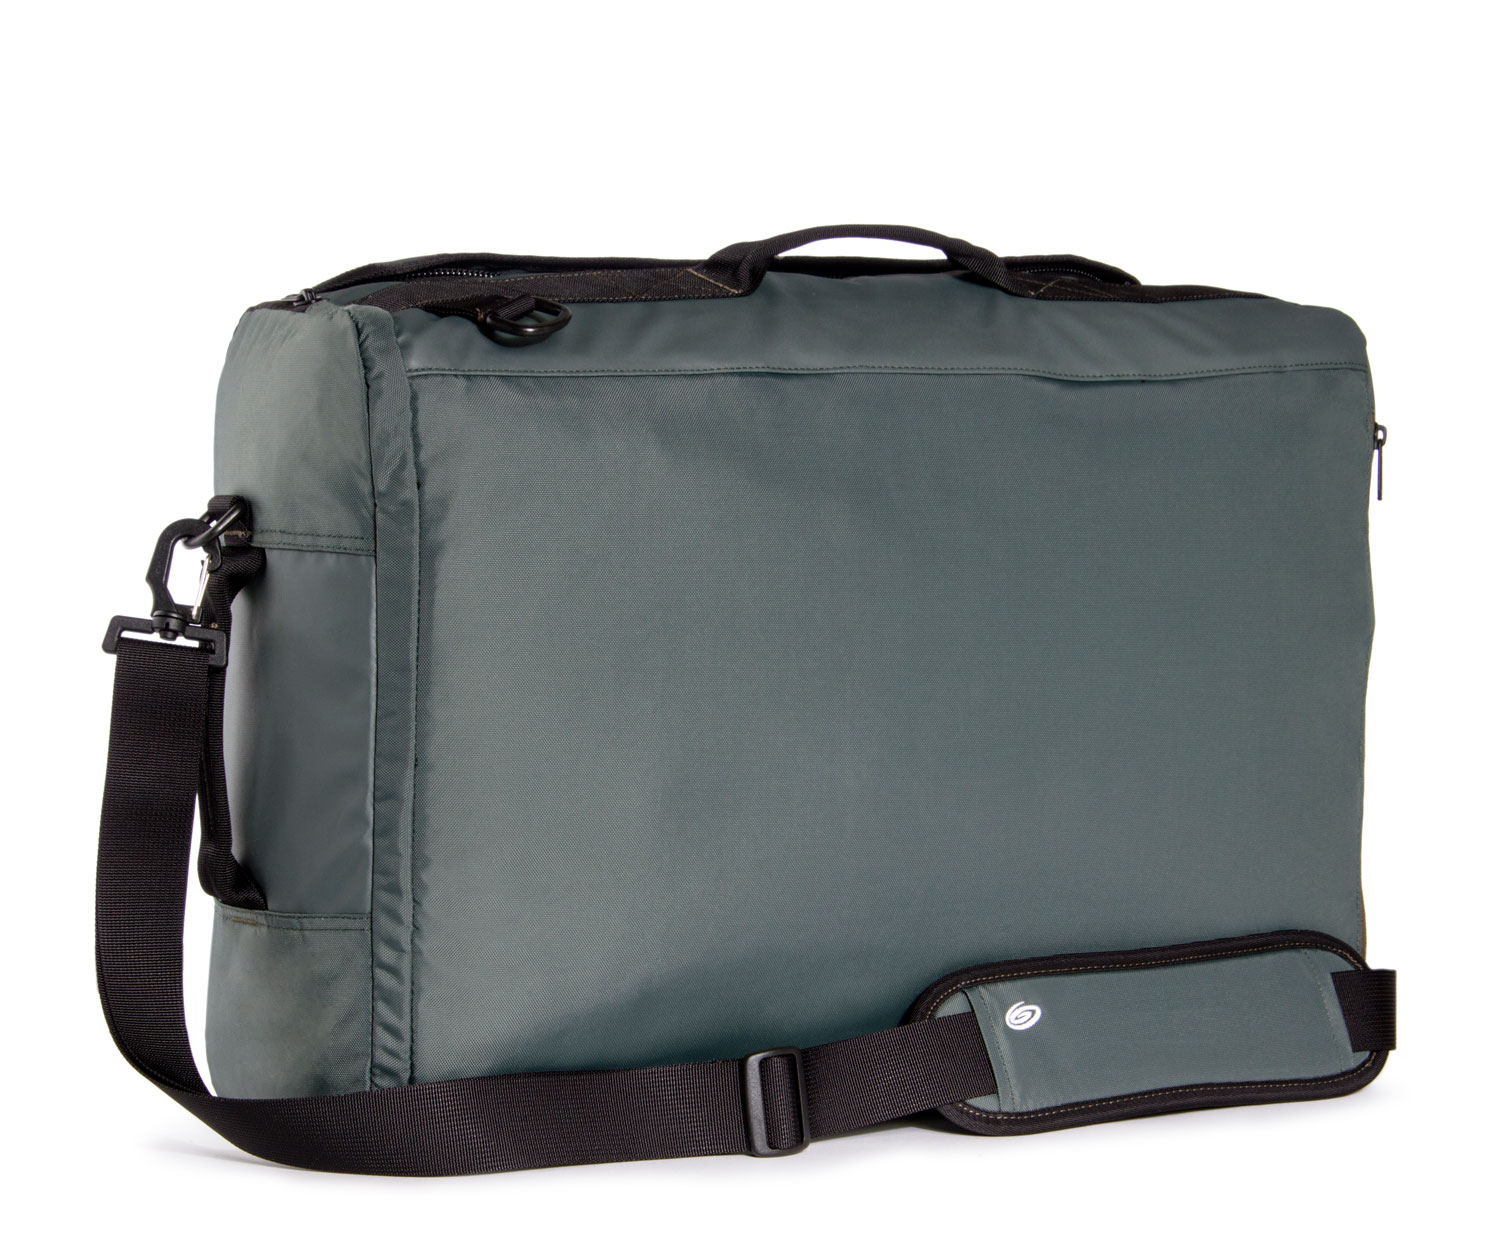 Timbuk2 Wingman Carry-On Travel Bag | eBay